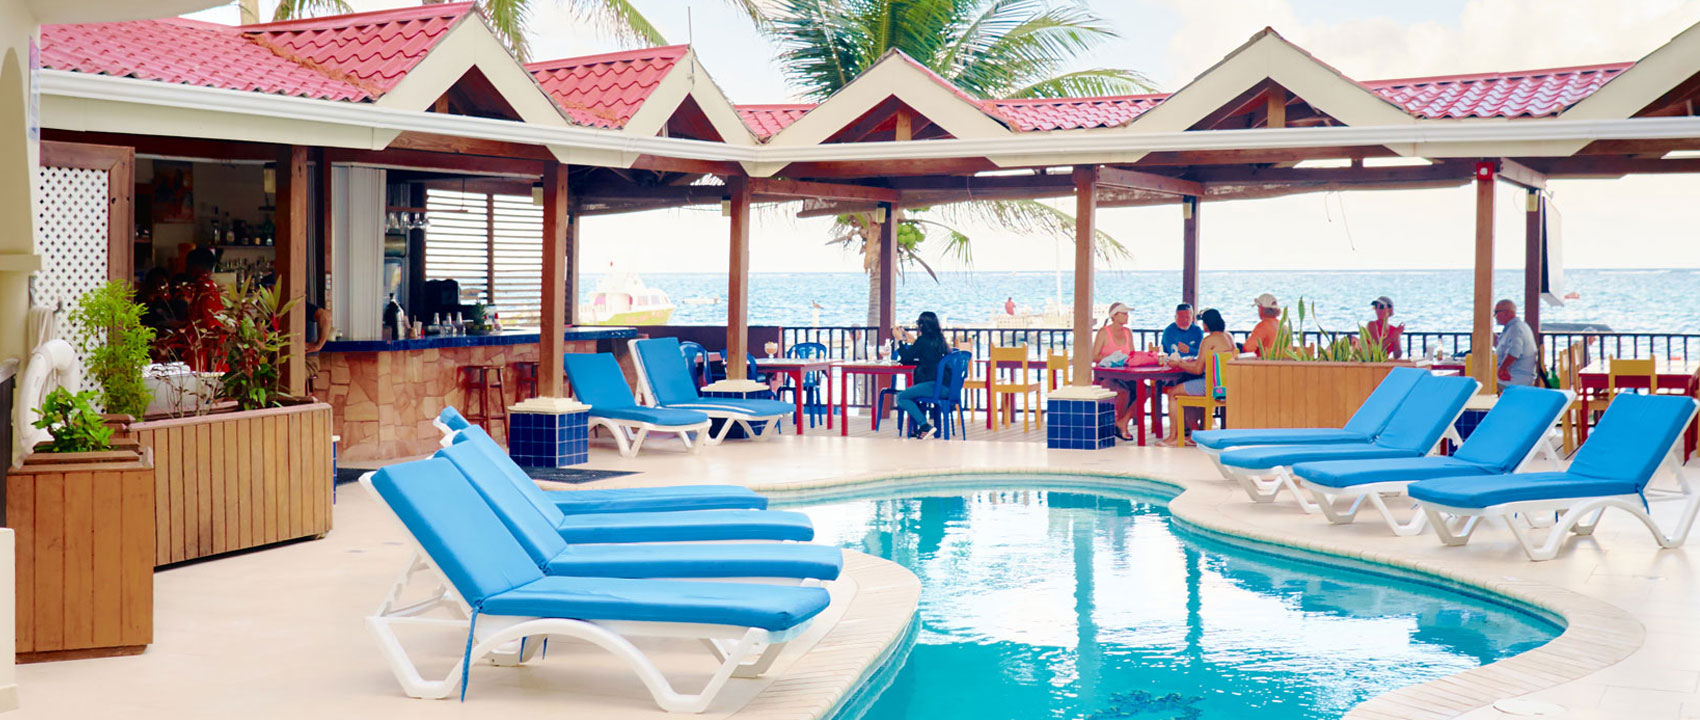 San Pedro Belize Vacation Packages